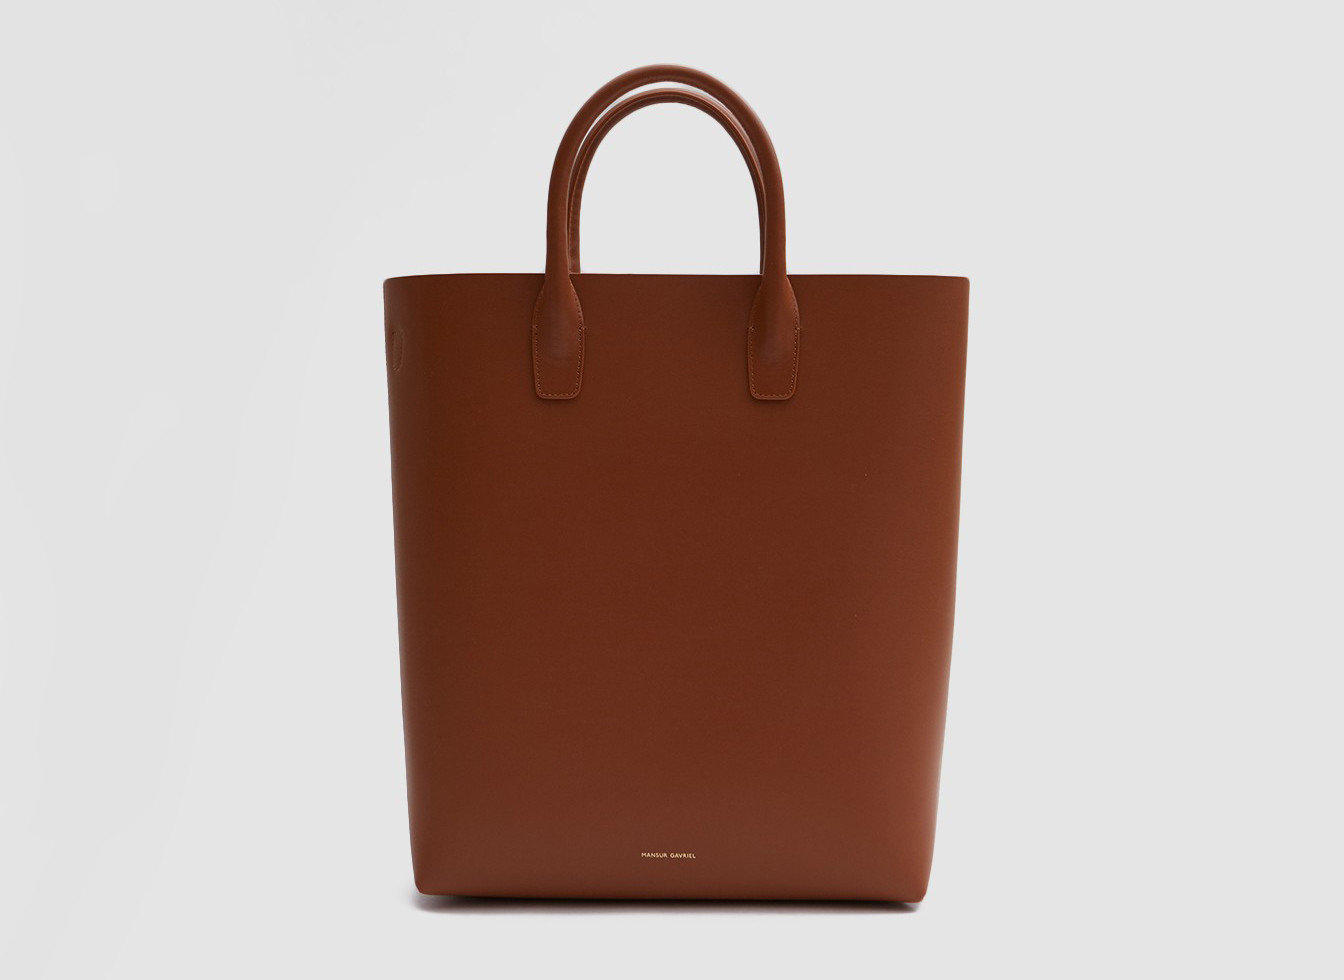 Style + Design Travel Shop accessory handbag case brown bag fashion accessory product leather shoulder bag caramel color tote bag product design brand peach baggage